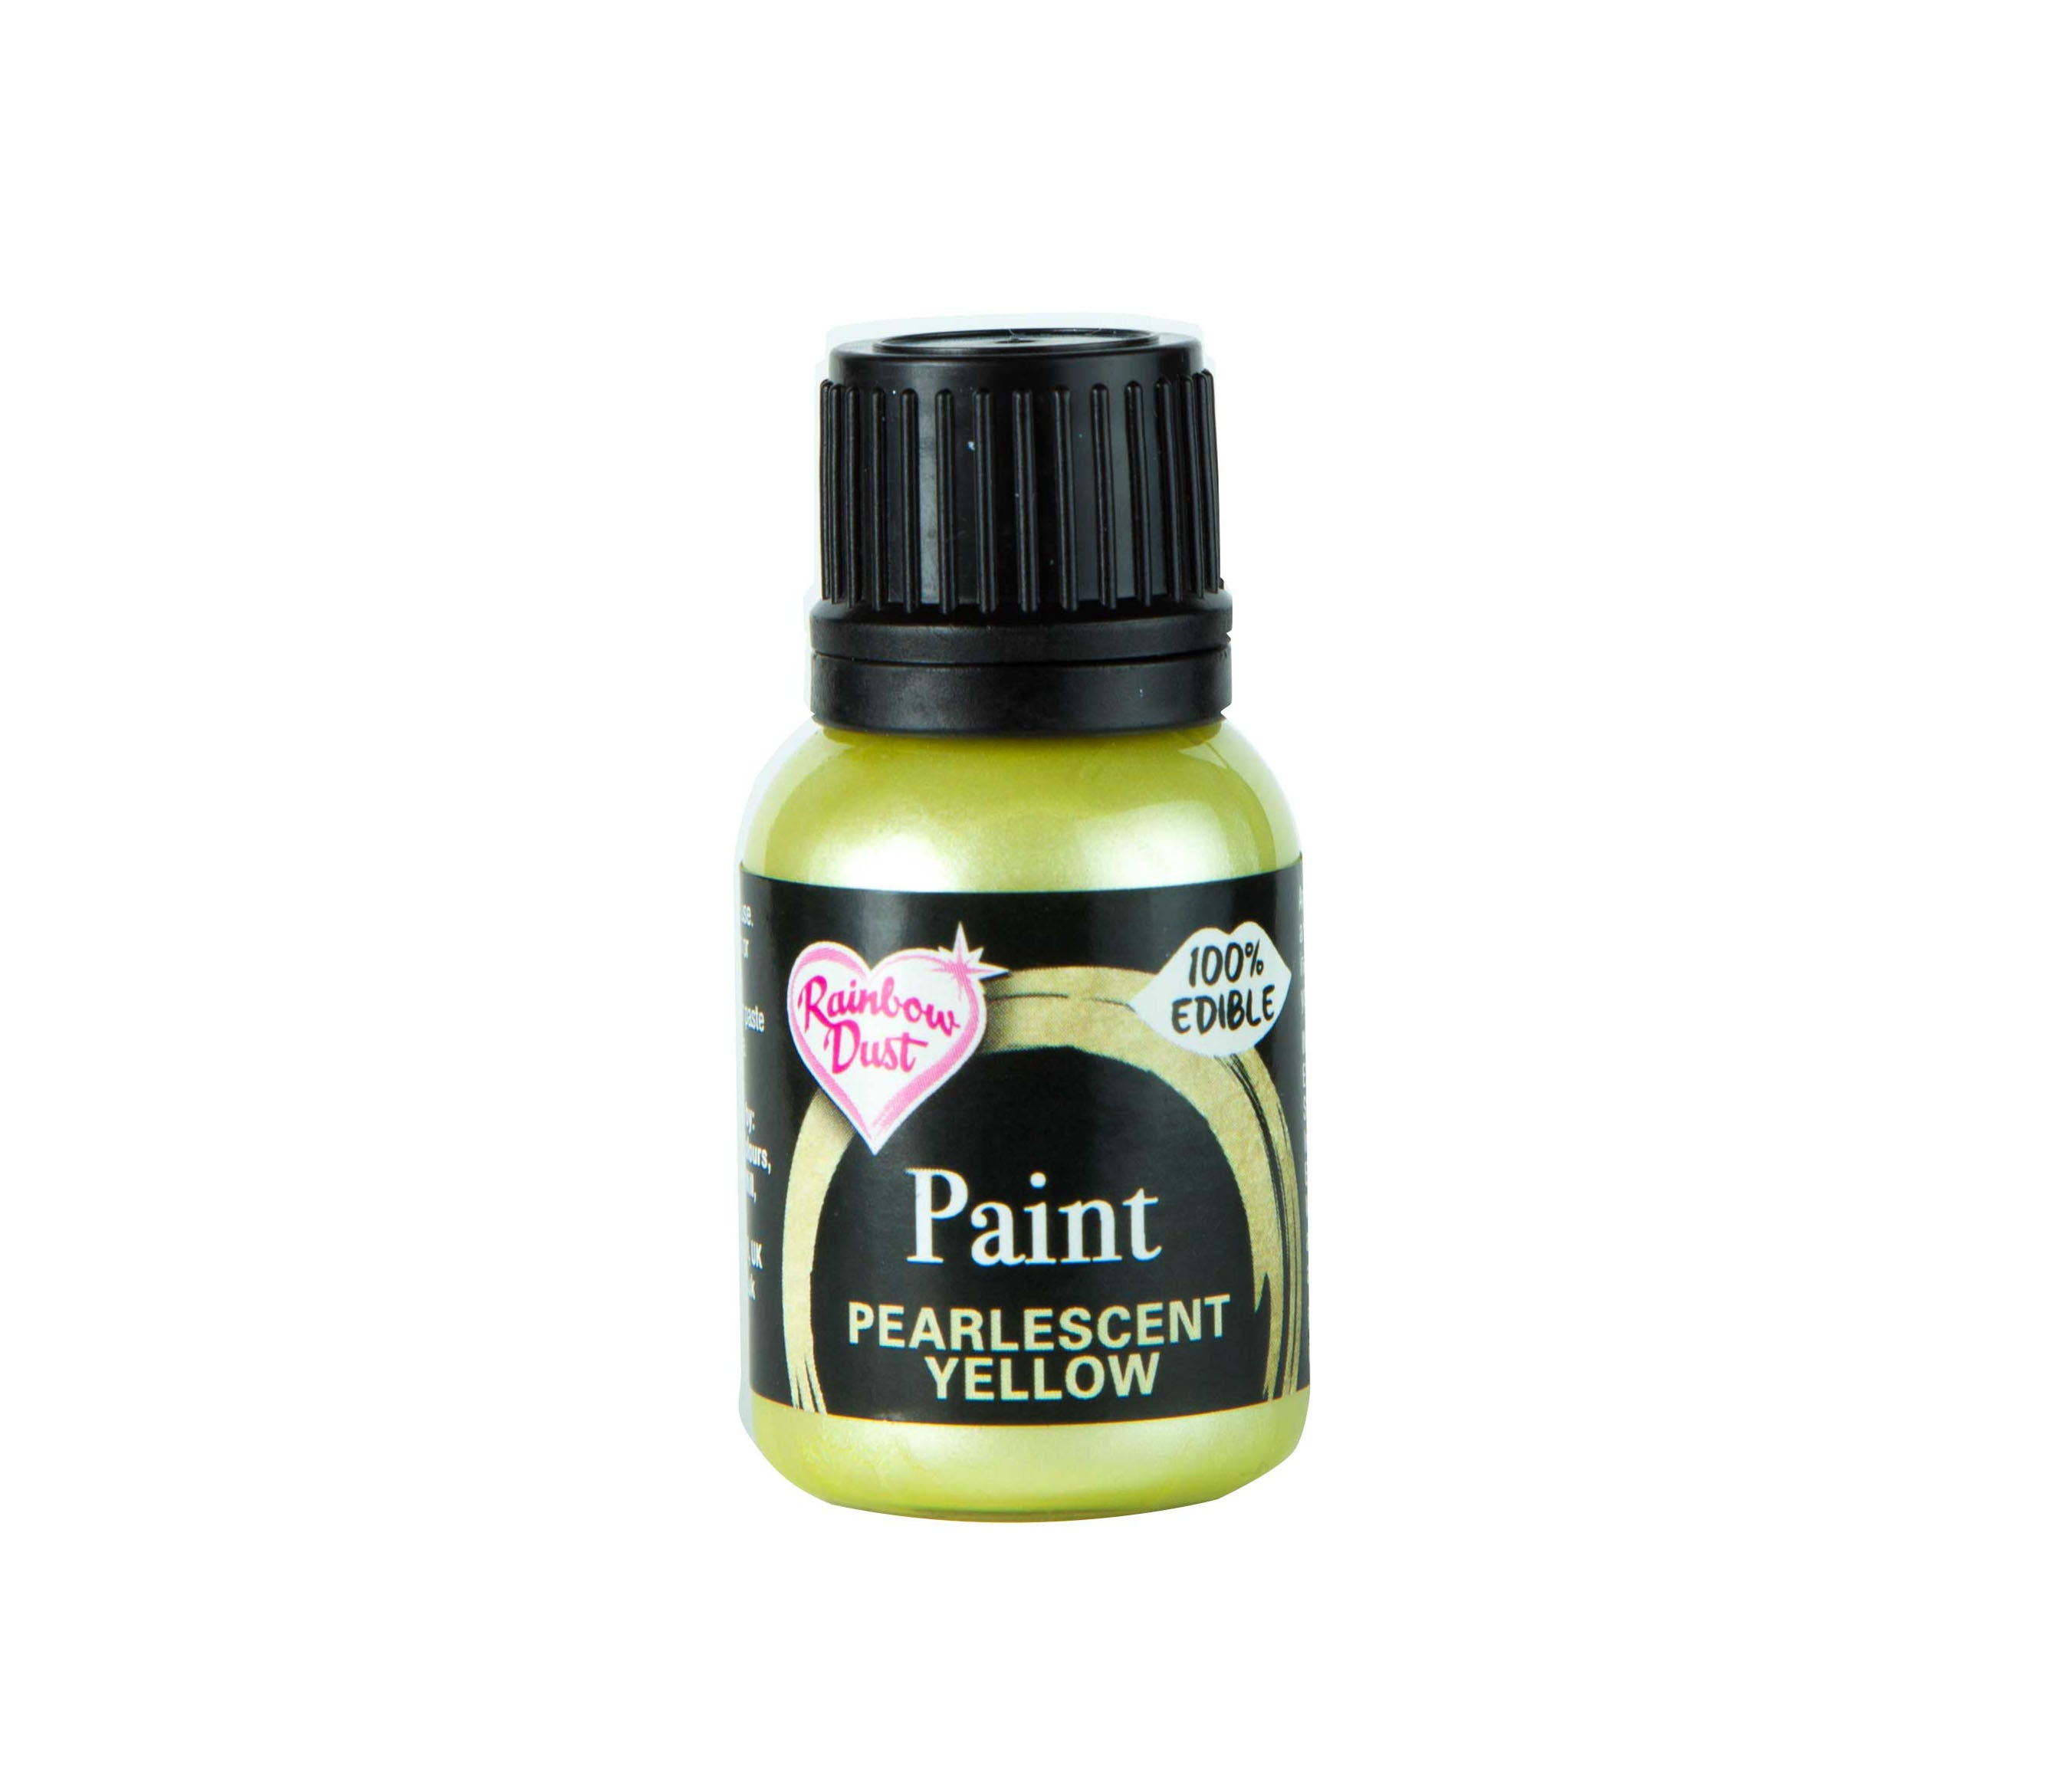 Edible Paints Pearl Yellow 25g